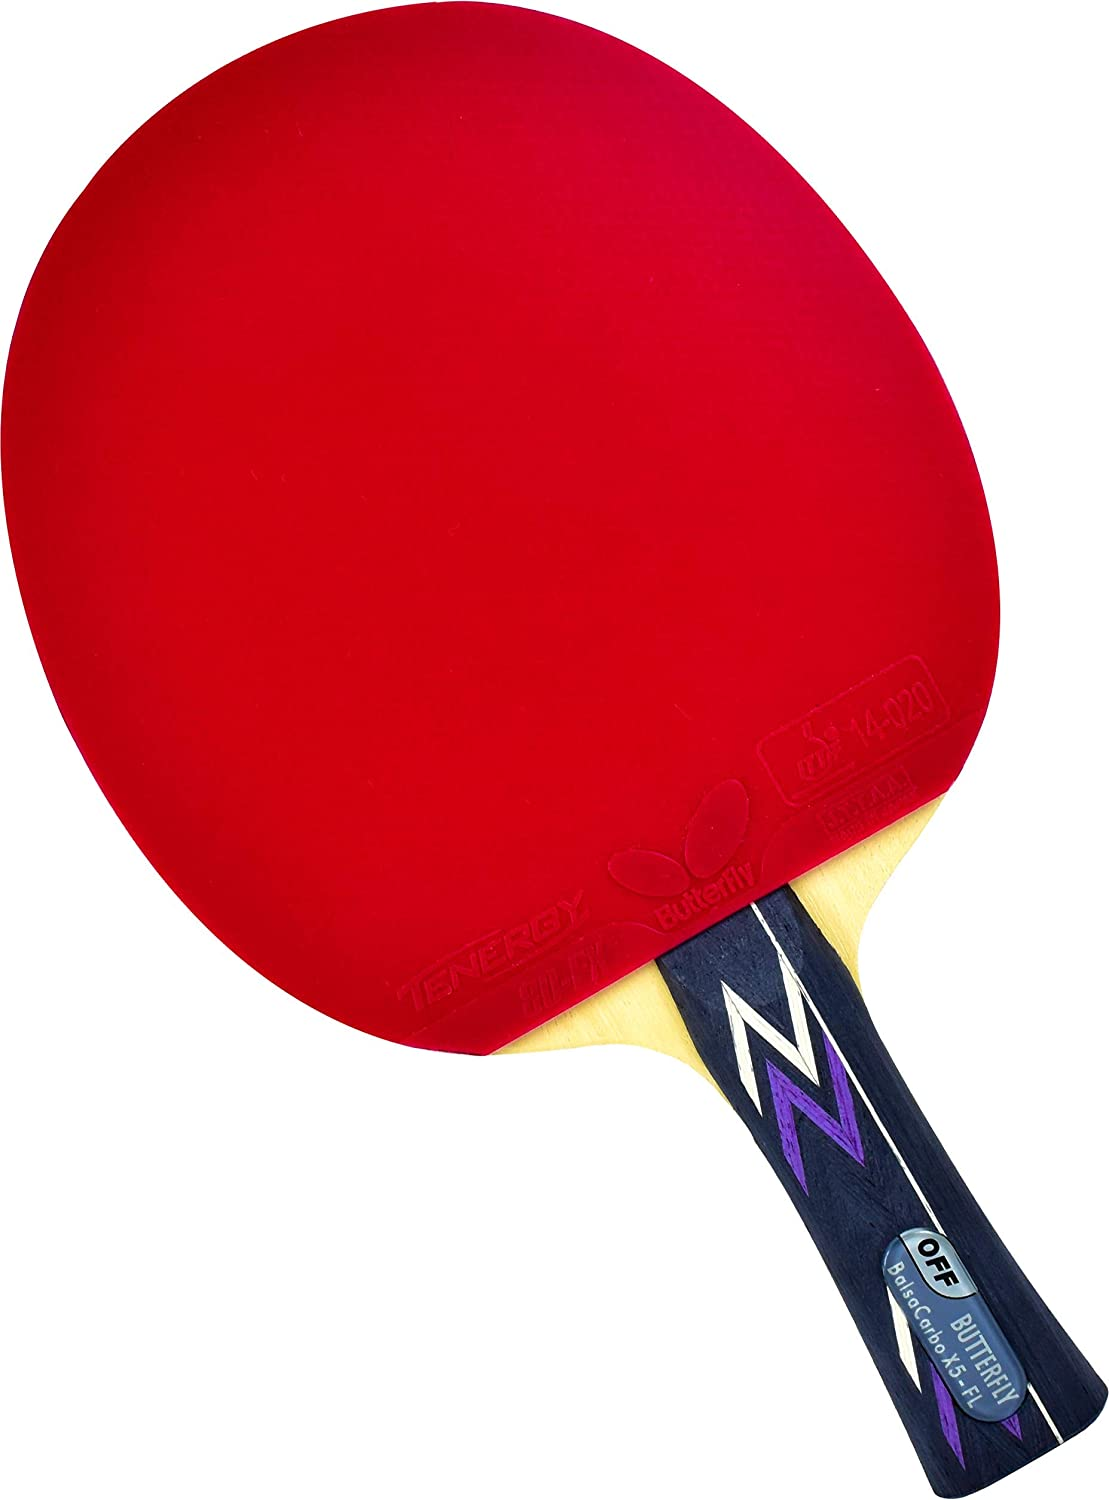 Butterfly Table Tennis Blade Butterfly Pro-Line Hand Assembled Professional Table Tennis Racket Choose Your Professional Ping Pong Paddle Combination Butterfly Table Tennis Rubber ITTF Approved Tournament Ping Pong Racket